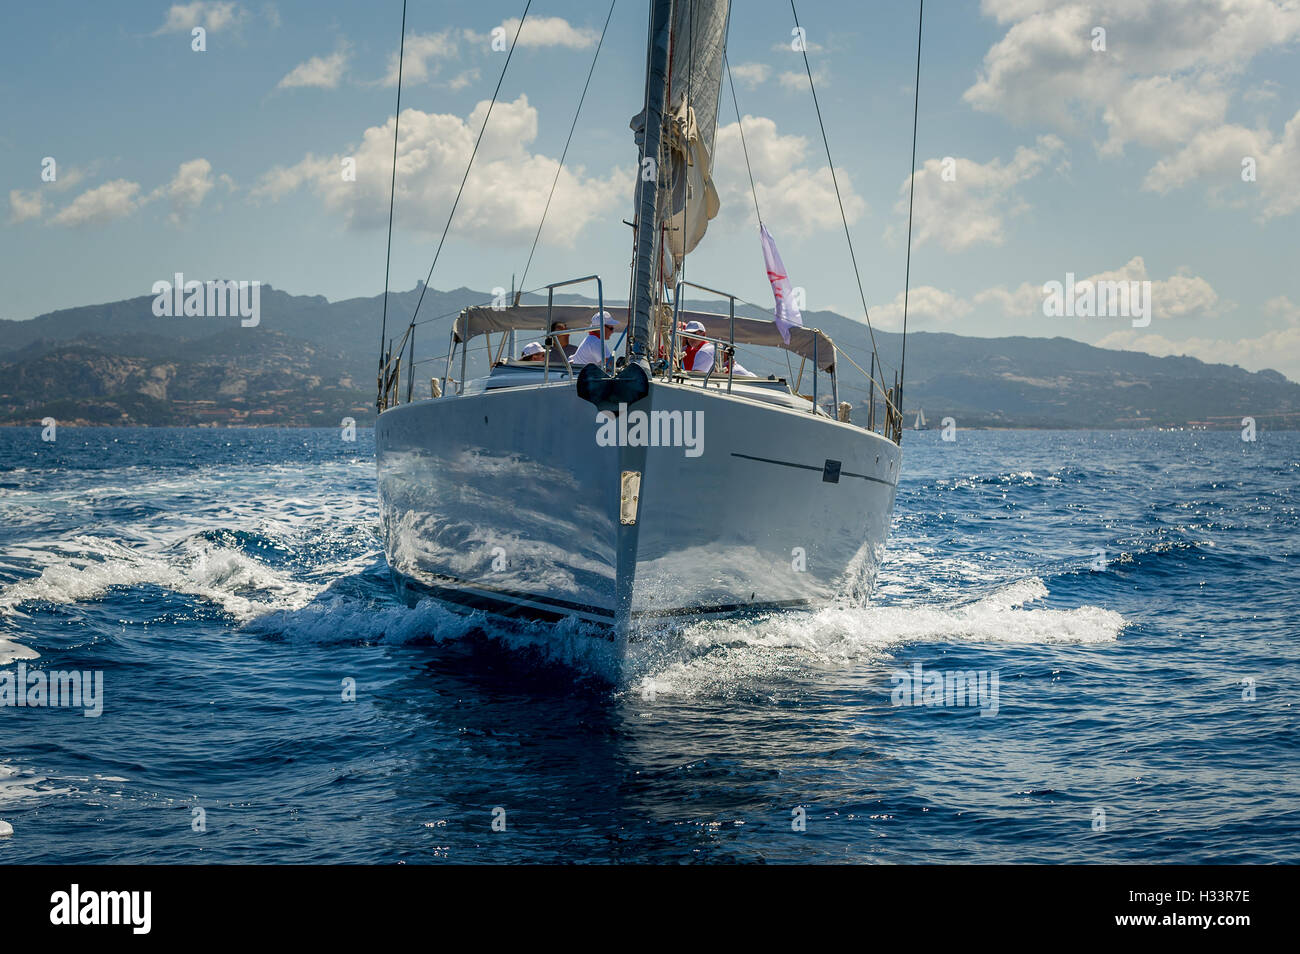 View on the bow of sailing yacht wich is cruising near Porto Cervo, Sardinia. - Stock Image